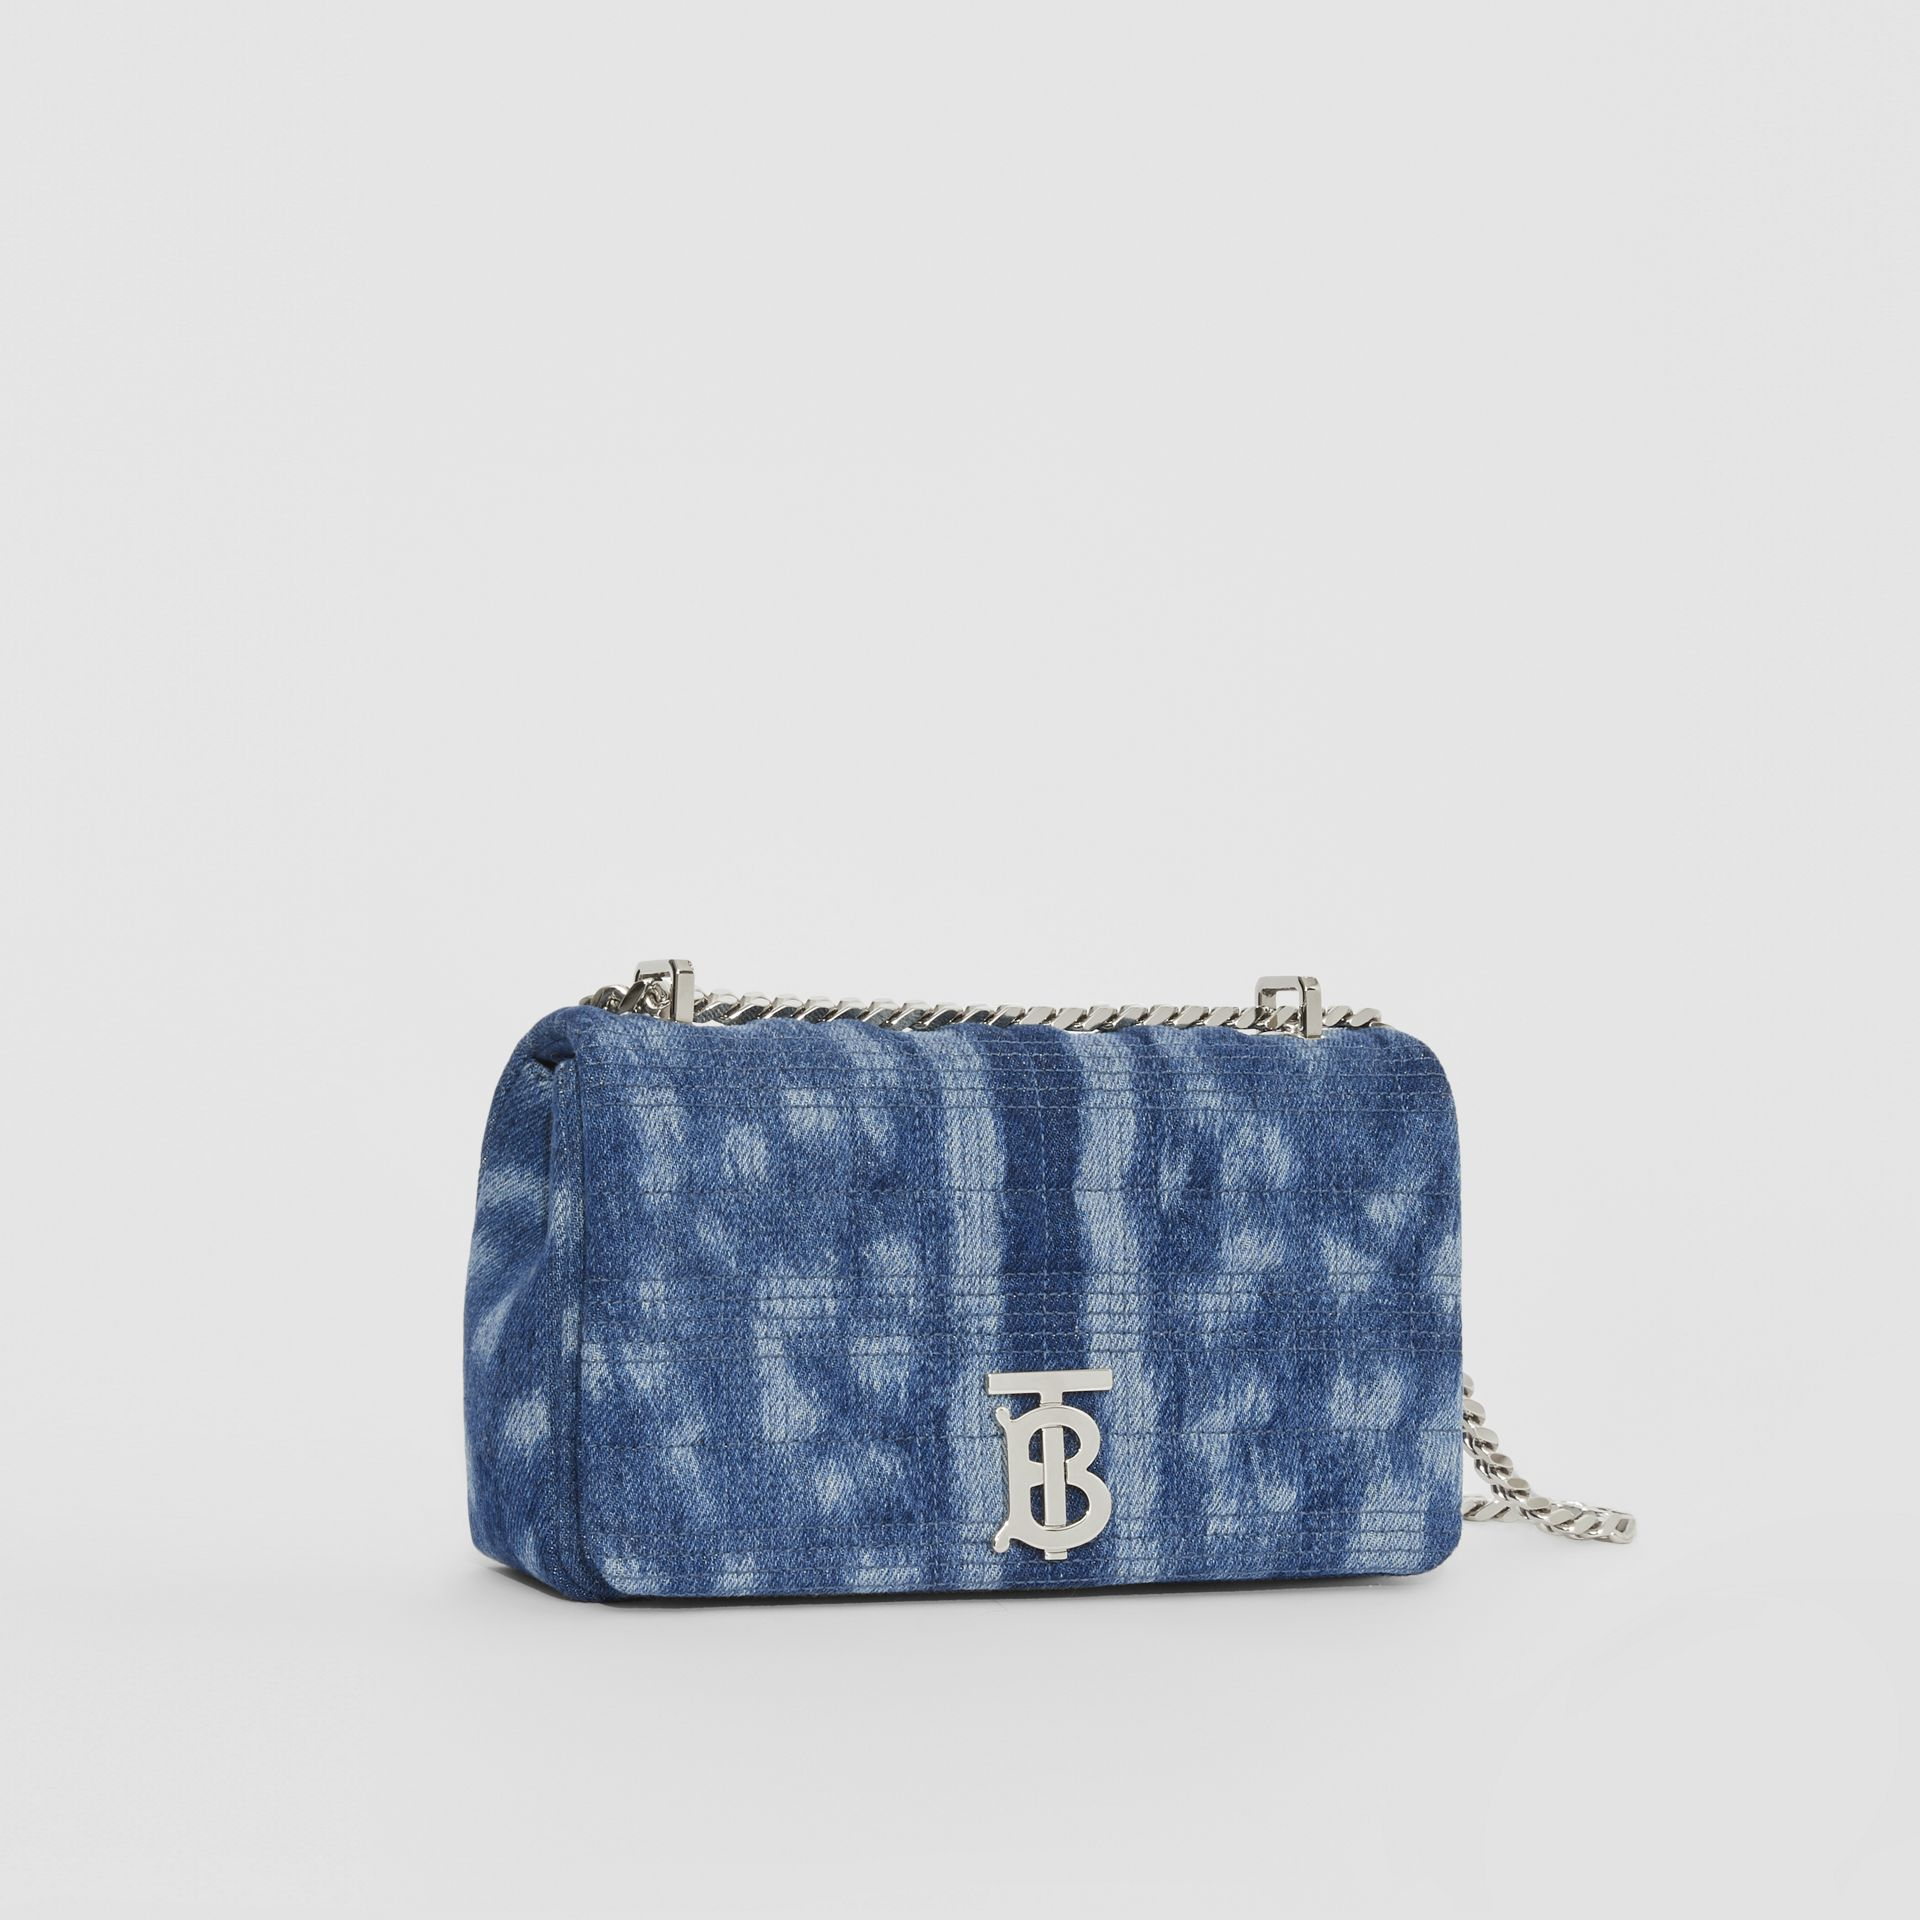 Petit sac Lola en denim matelassé (Bleu) | Burberry - photo de la galerie 6